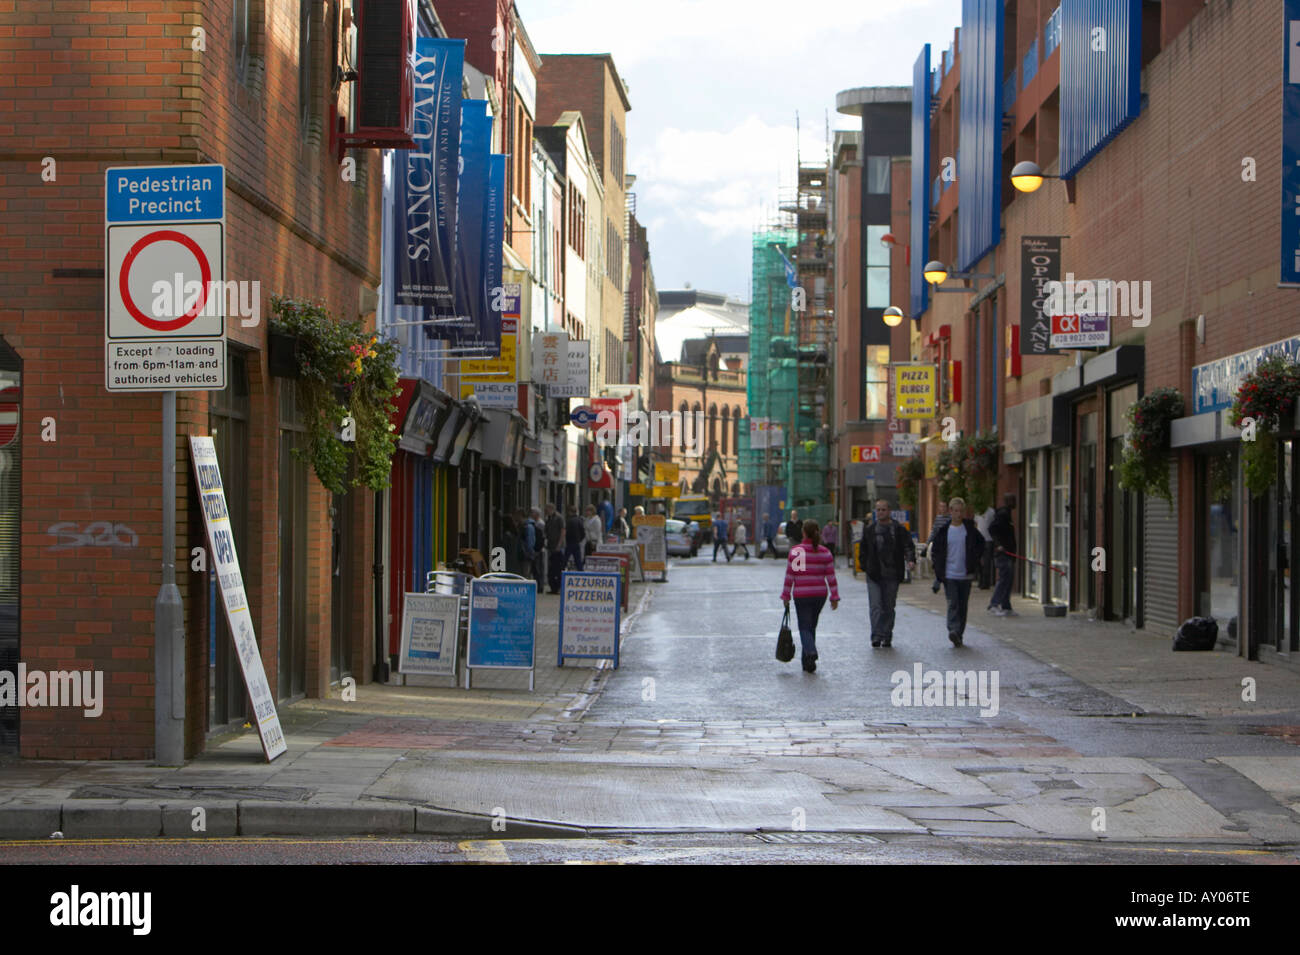 Pedestrian precinct no vehicles except for loading and permit holders sign at entrance to pedestrian area in Belfast City Centre - Stock Image